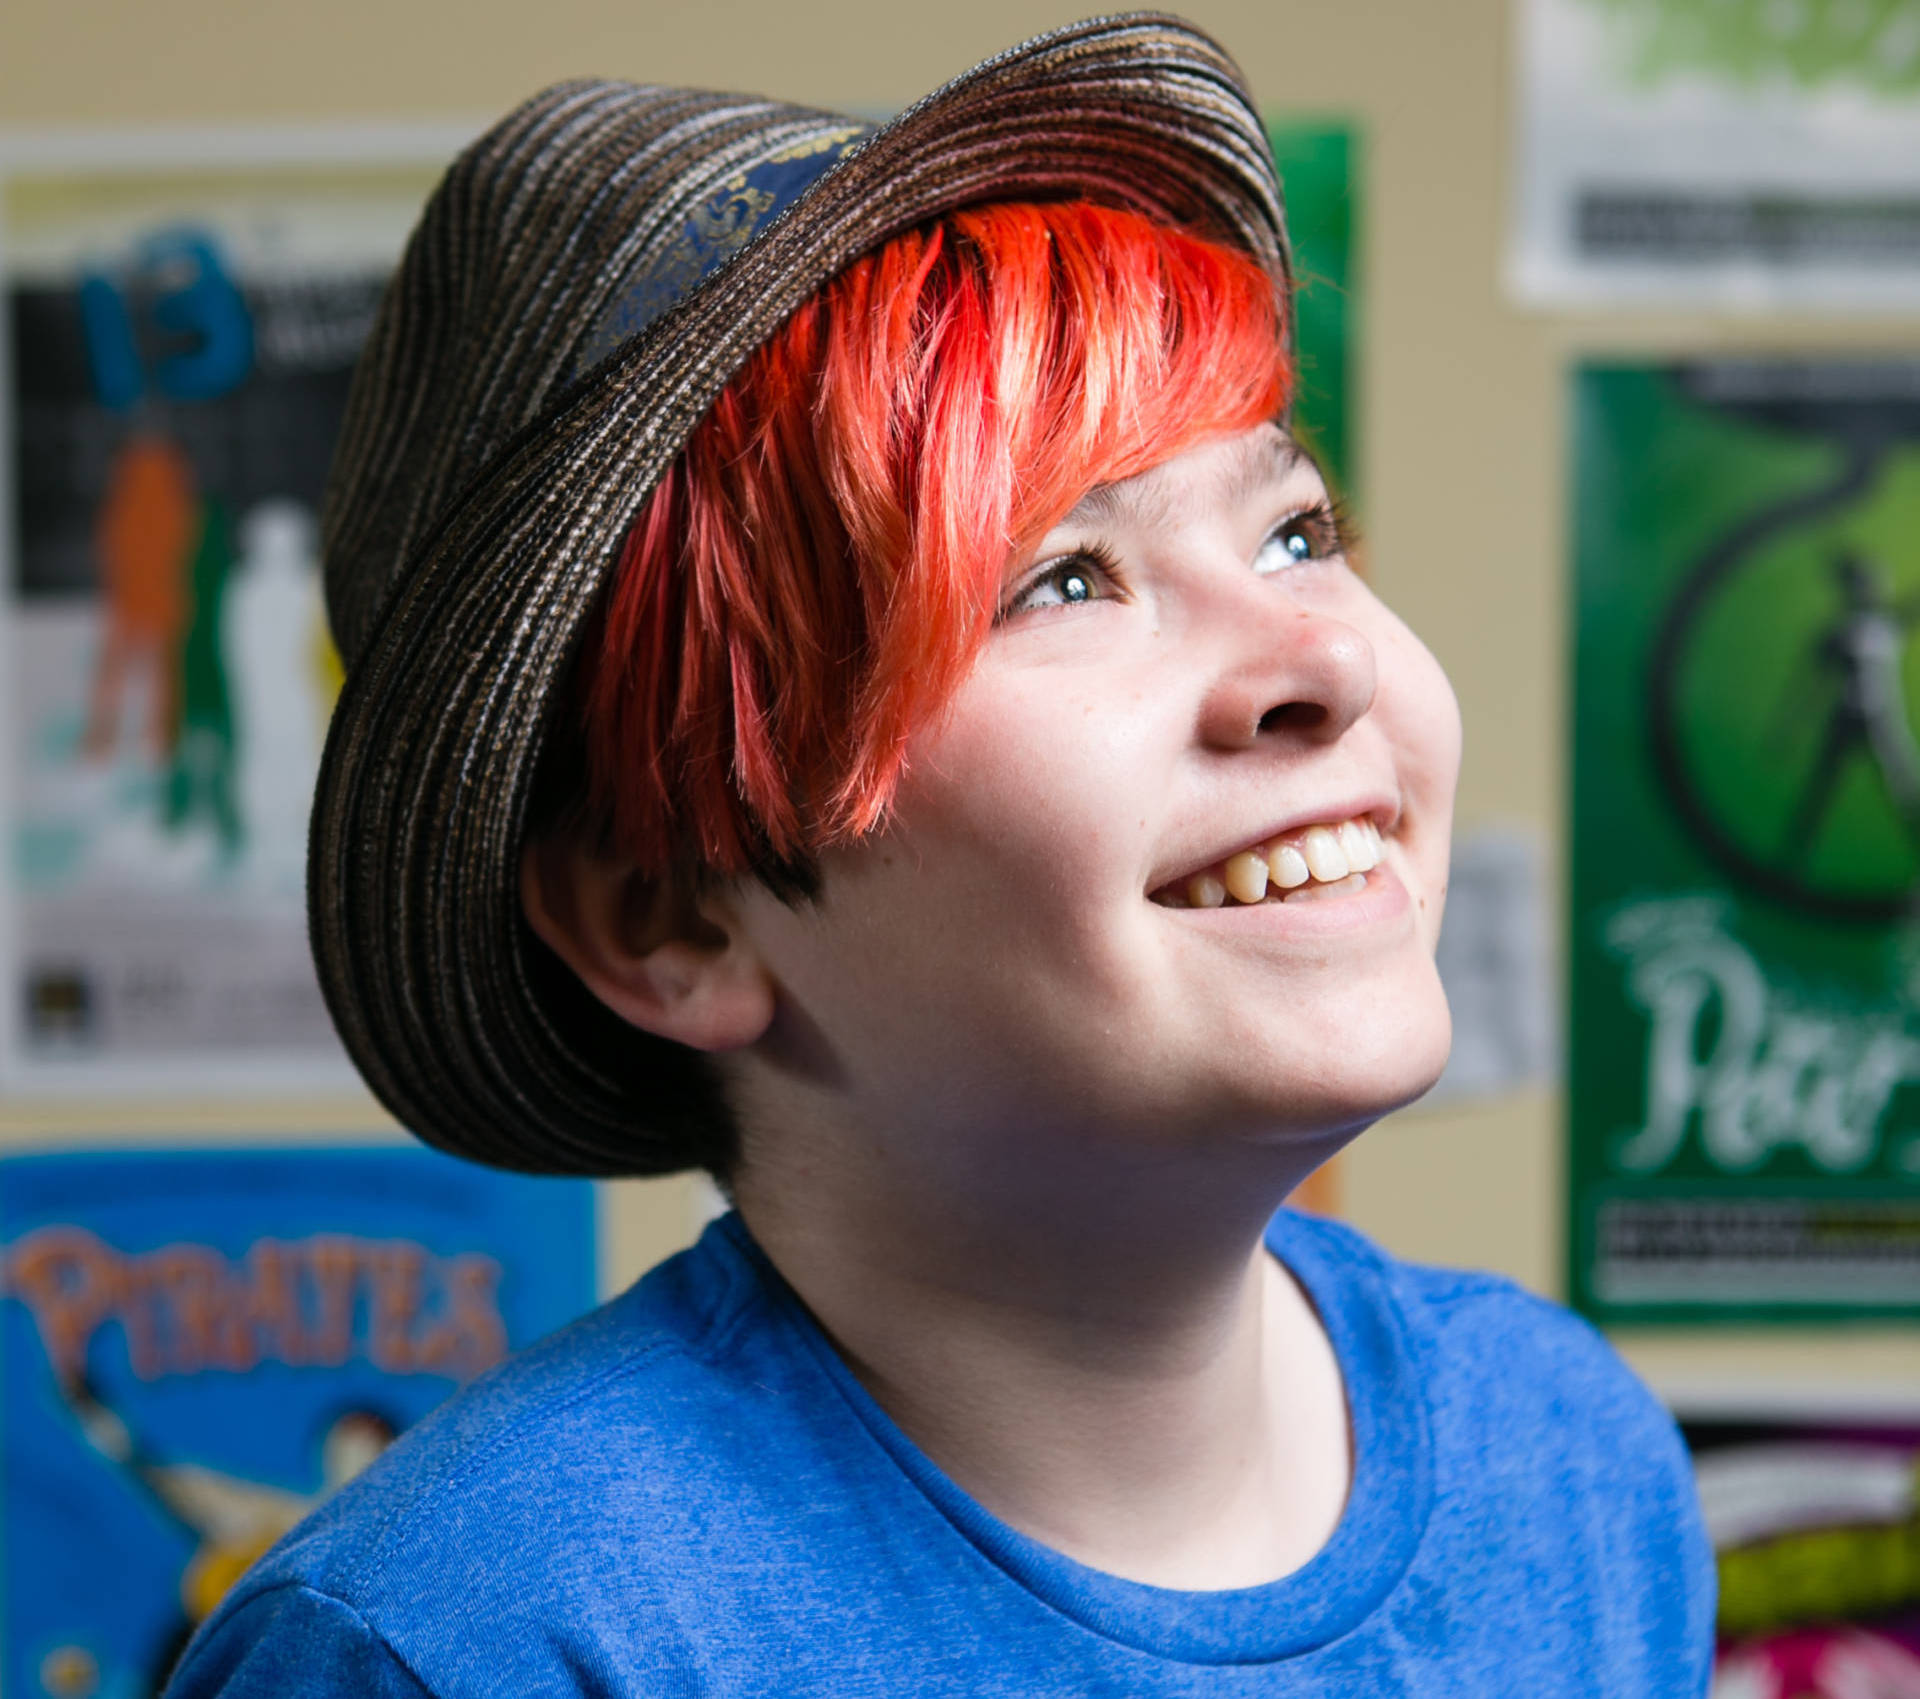 Max, a 13-year-old Californian who identifies as agender, one of multiple gender identities that fall into the umbrella of 'nonbinary.' The state will allow residents to choose nonbinary as an official gender on drivers licenses and birth certificates starting in 2019.